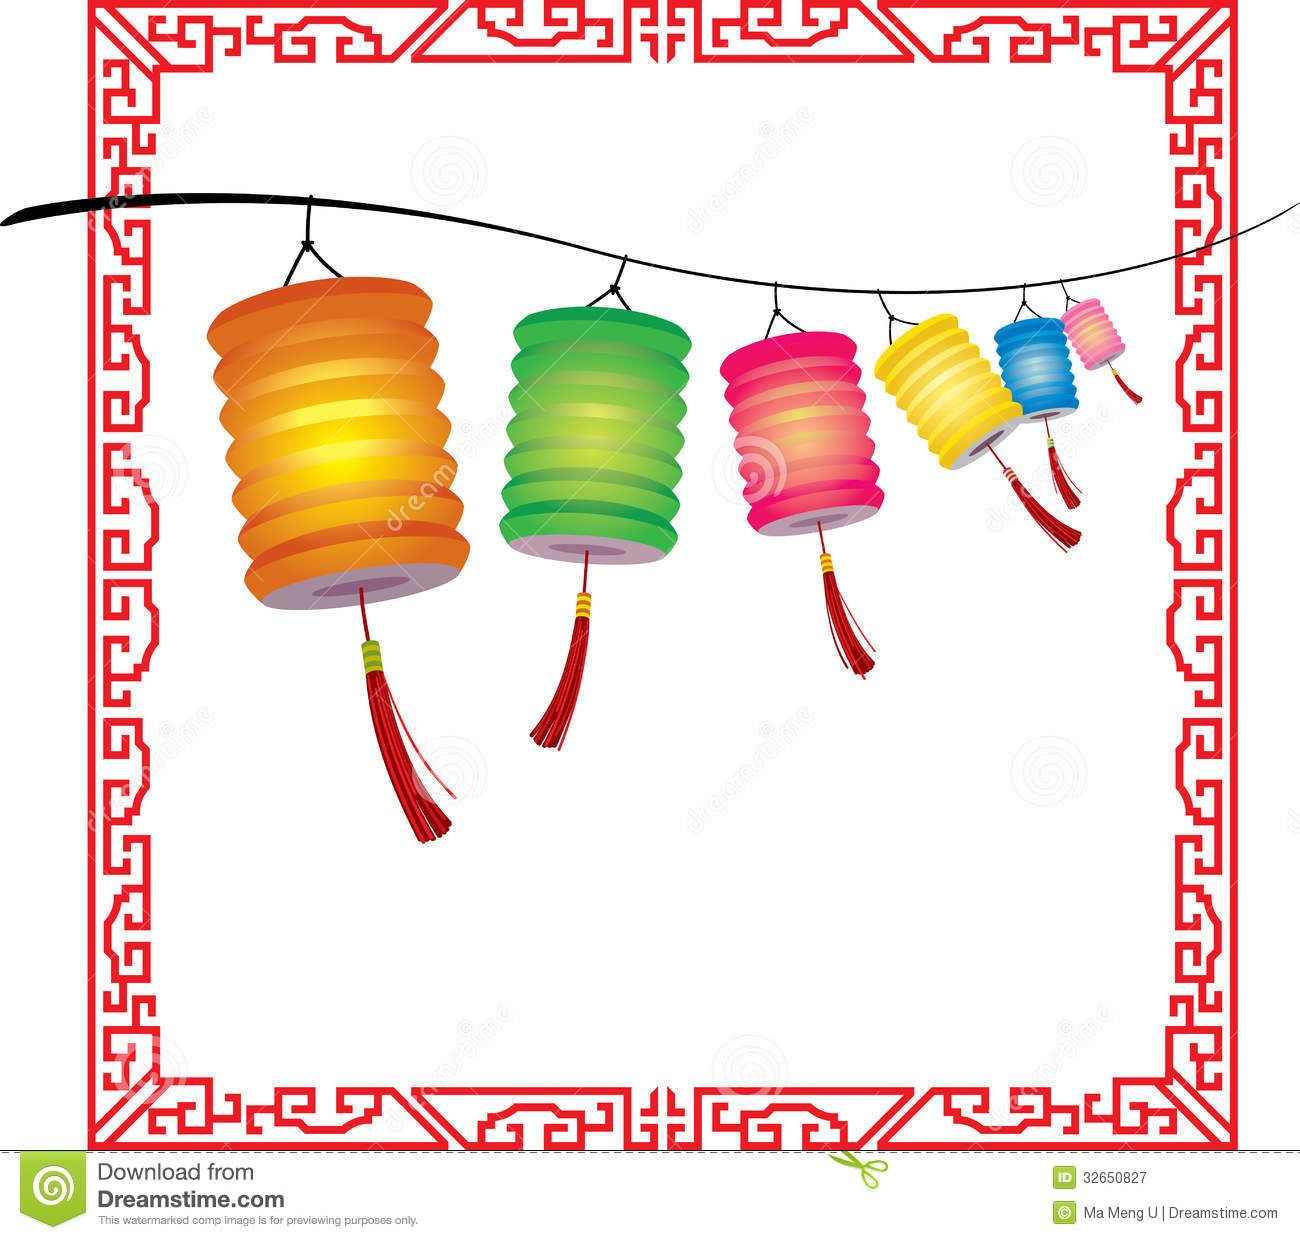 Clipart Images Clipart Lantern Festival String Of Bright Hanging Chinese Lanterns Decorati